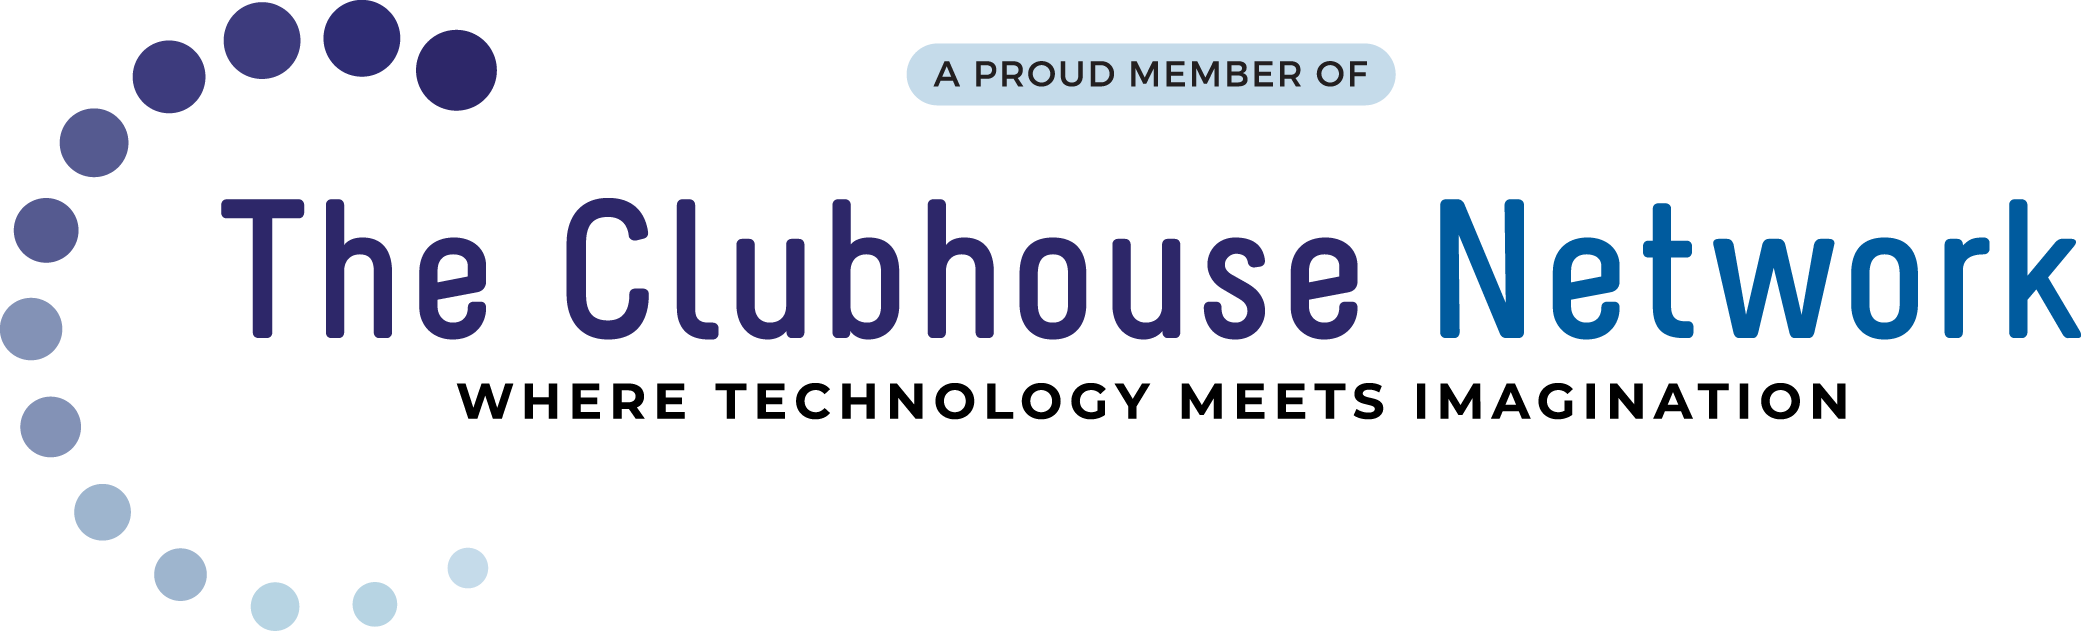 Logo: Proud Member of The Clubhouse Network